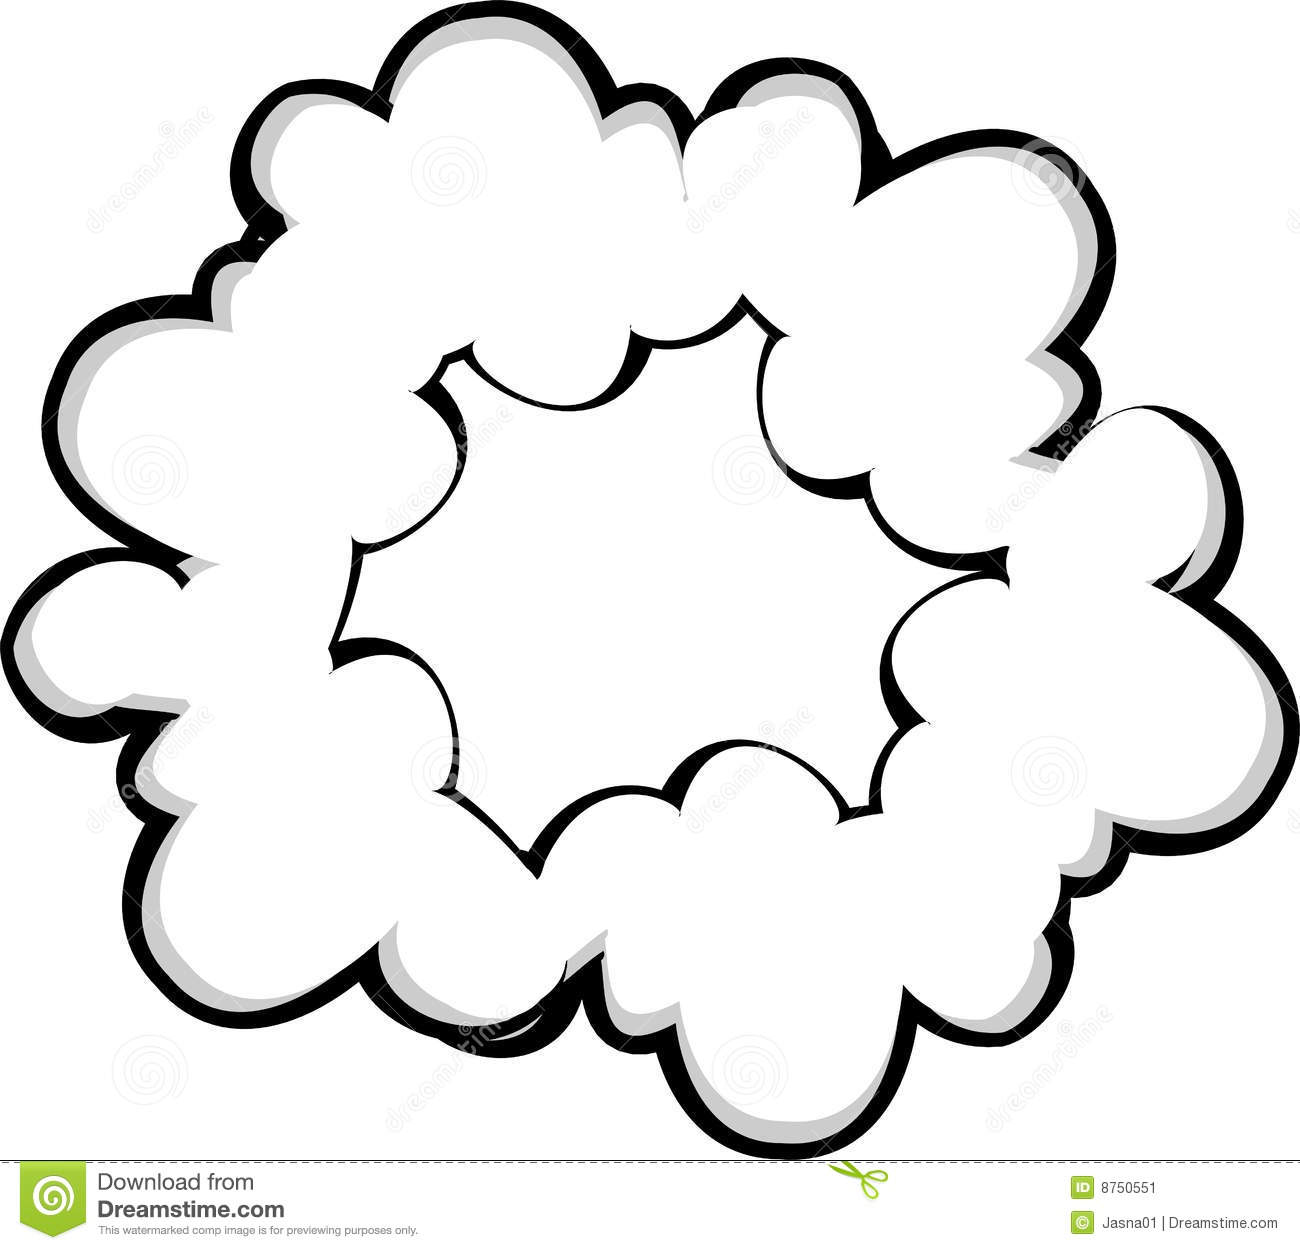 It's just a picture of Dynamite Smoke Cloud Drawing